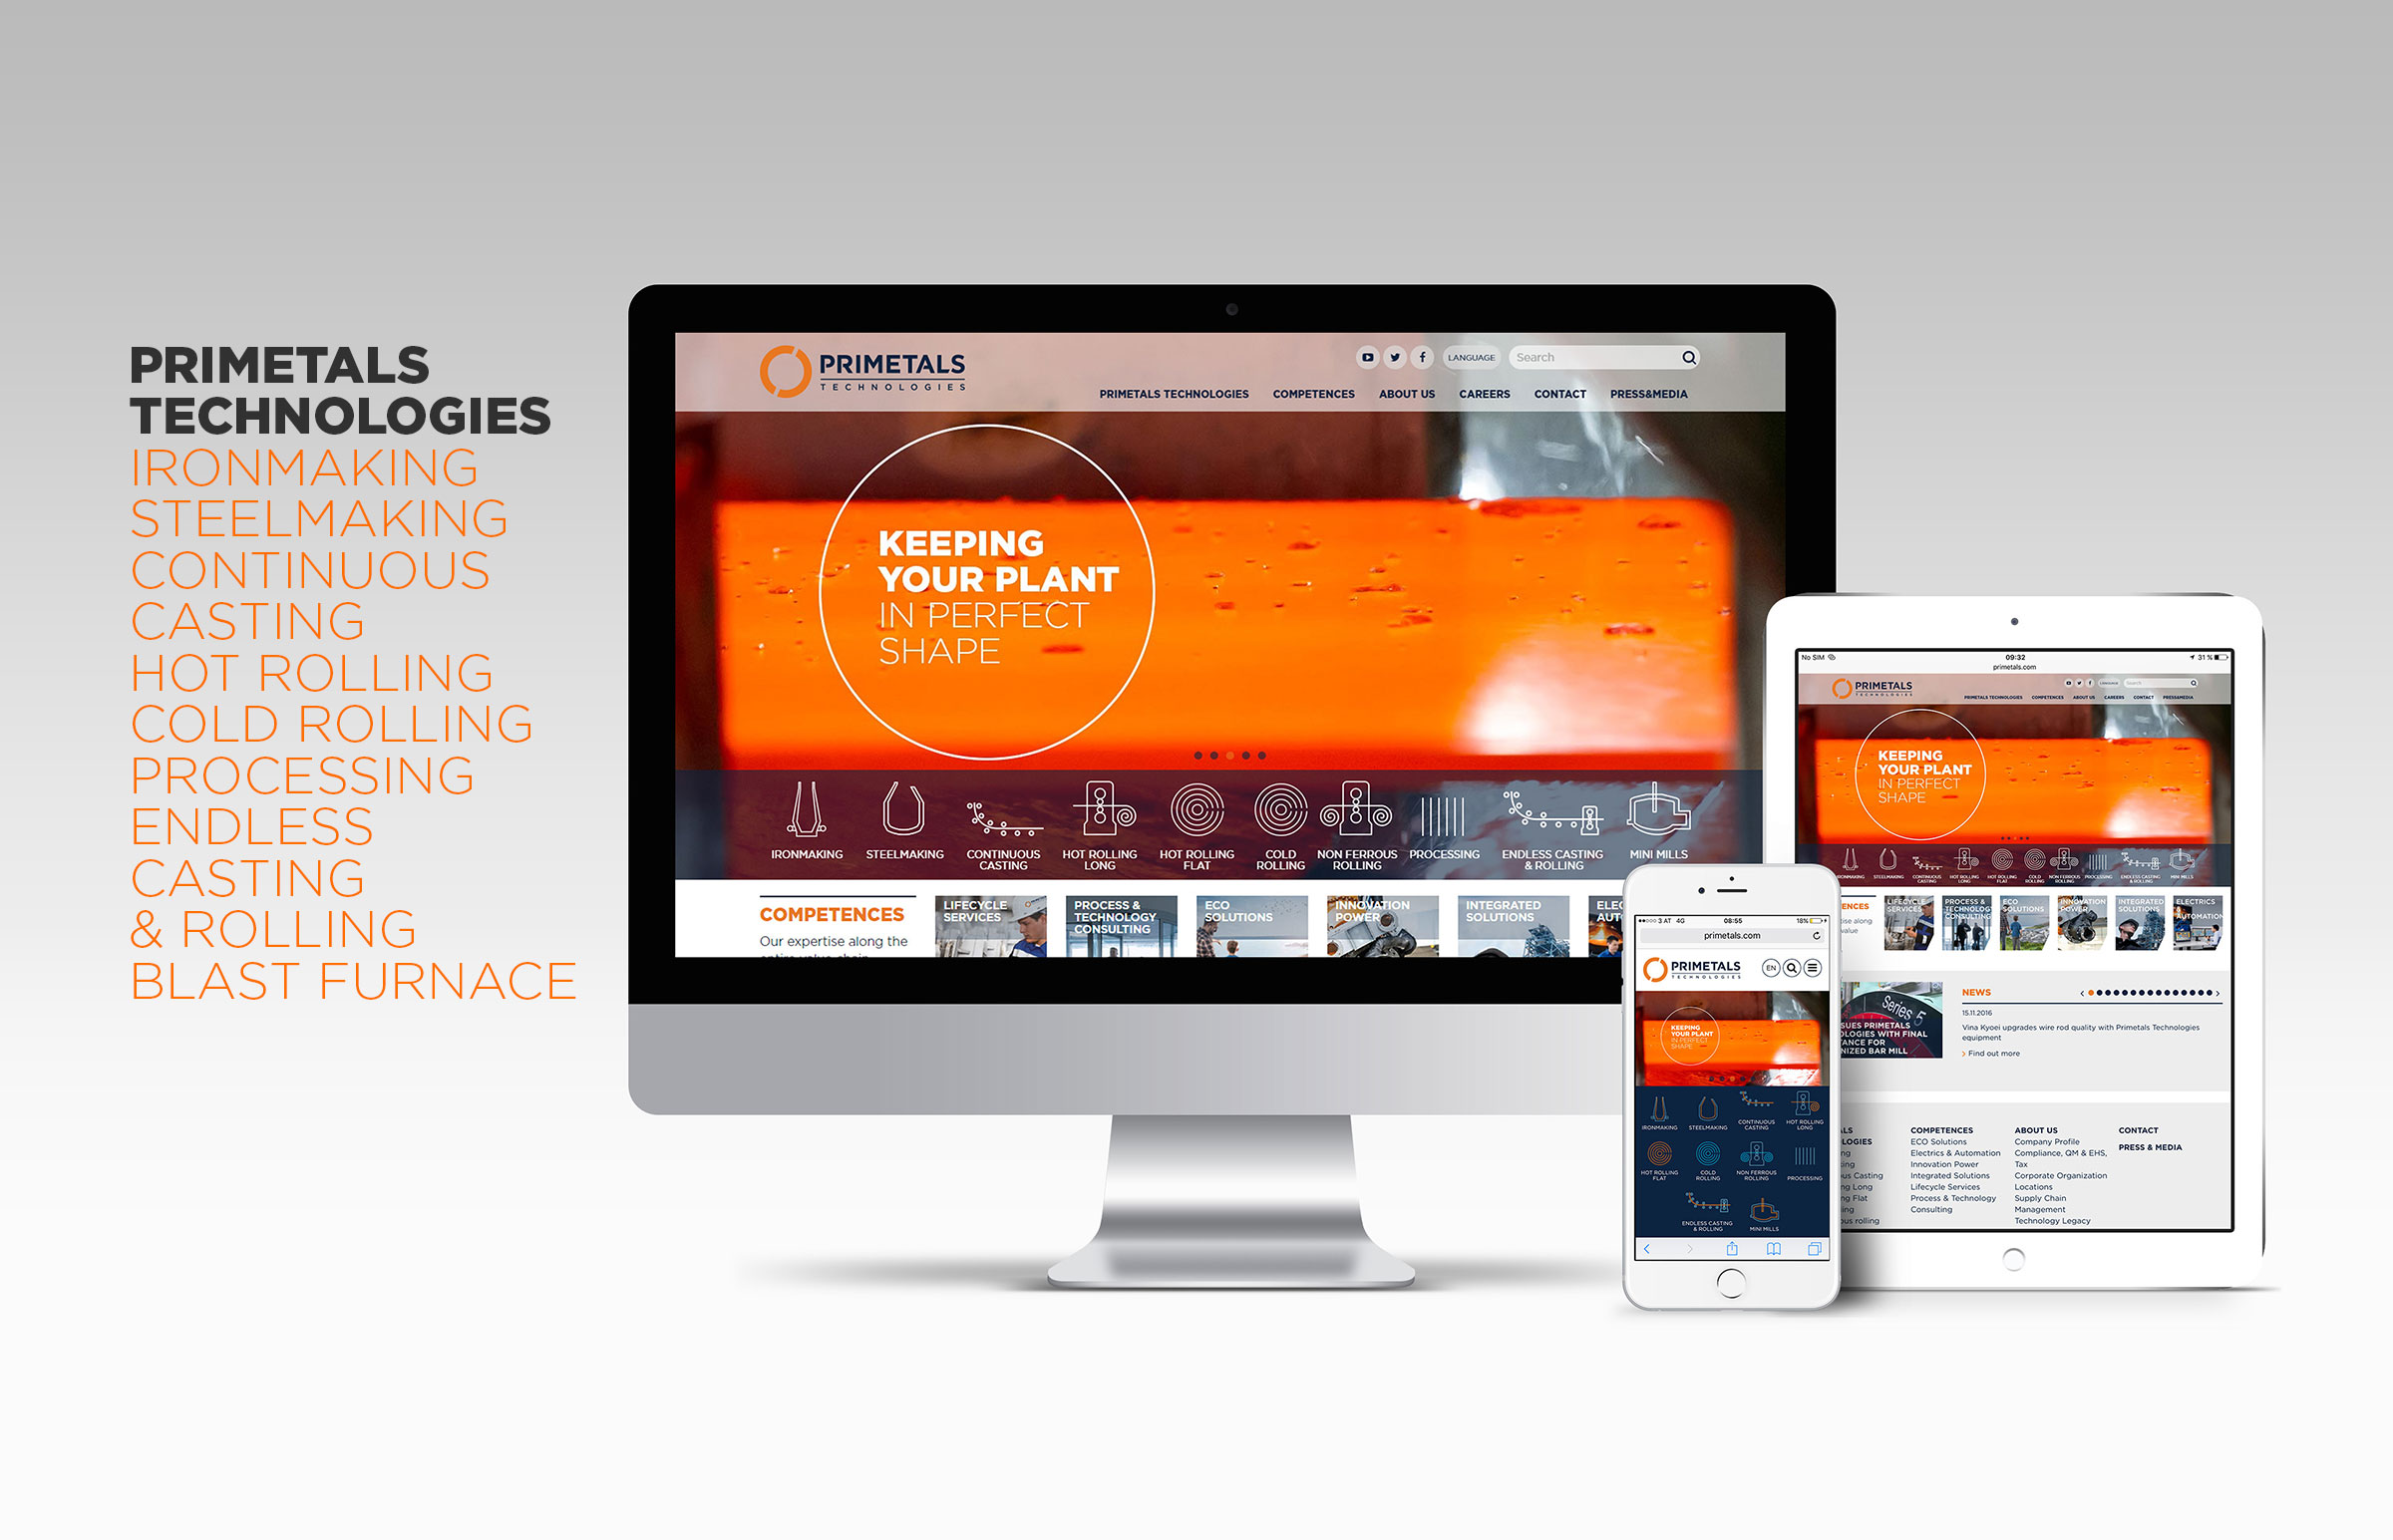 Primetals website layouts on iPad iPhone and iMac